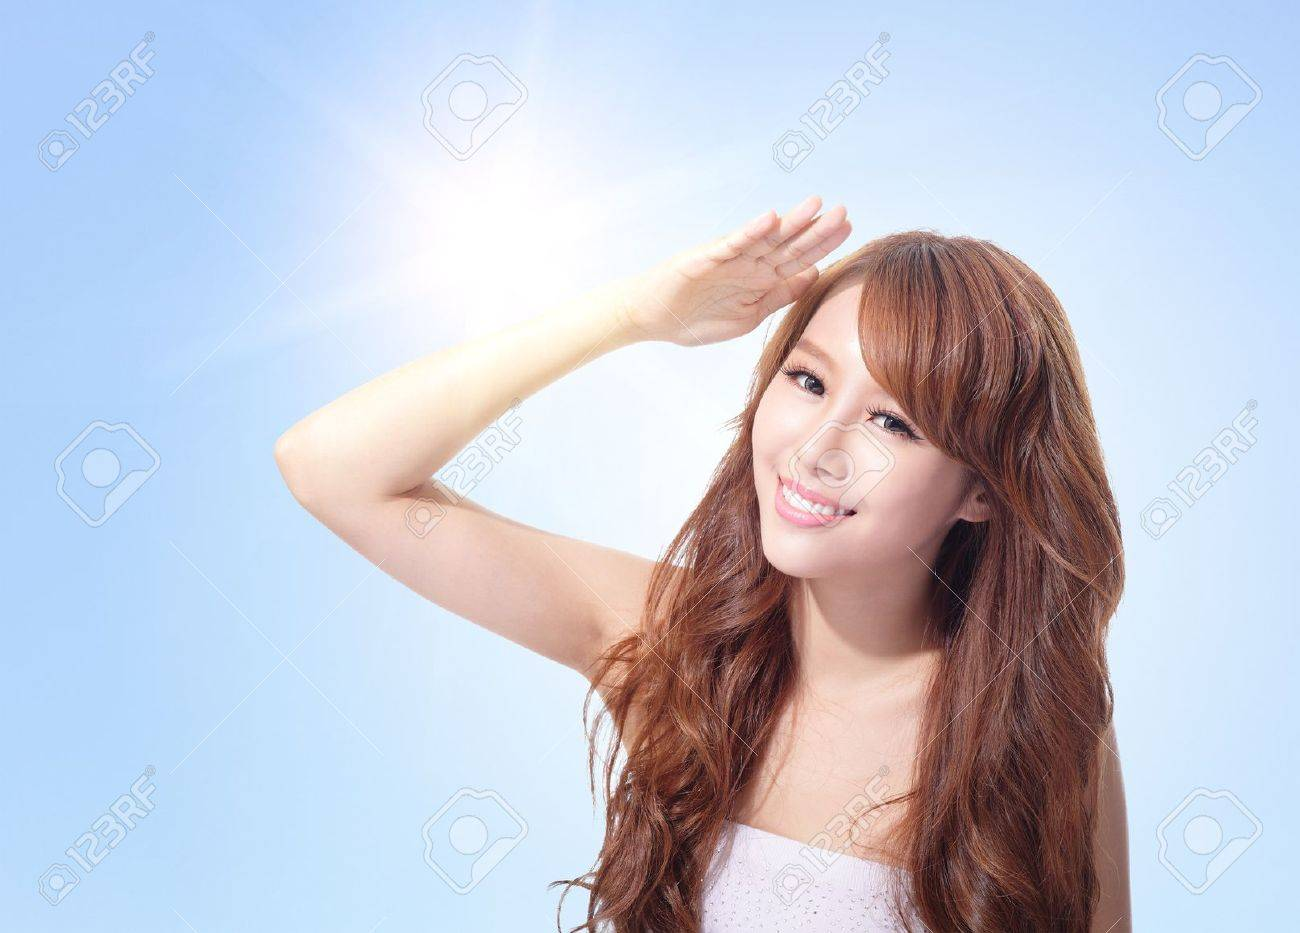 Beautiful woman face with sunshine and blue sky, concept for skin care and sun block, asian beauty Stock Photo - 23833478